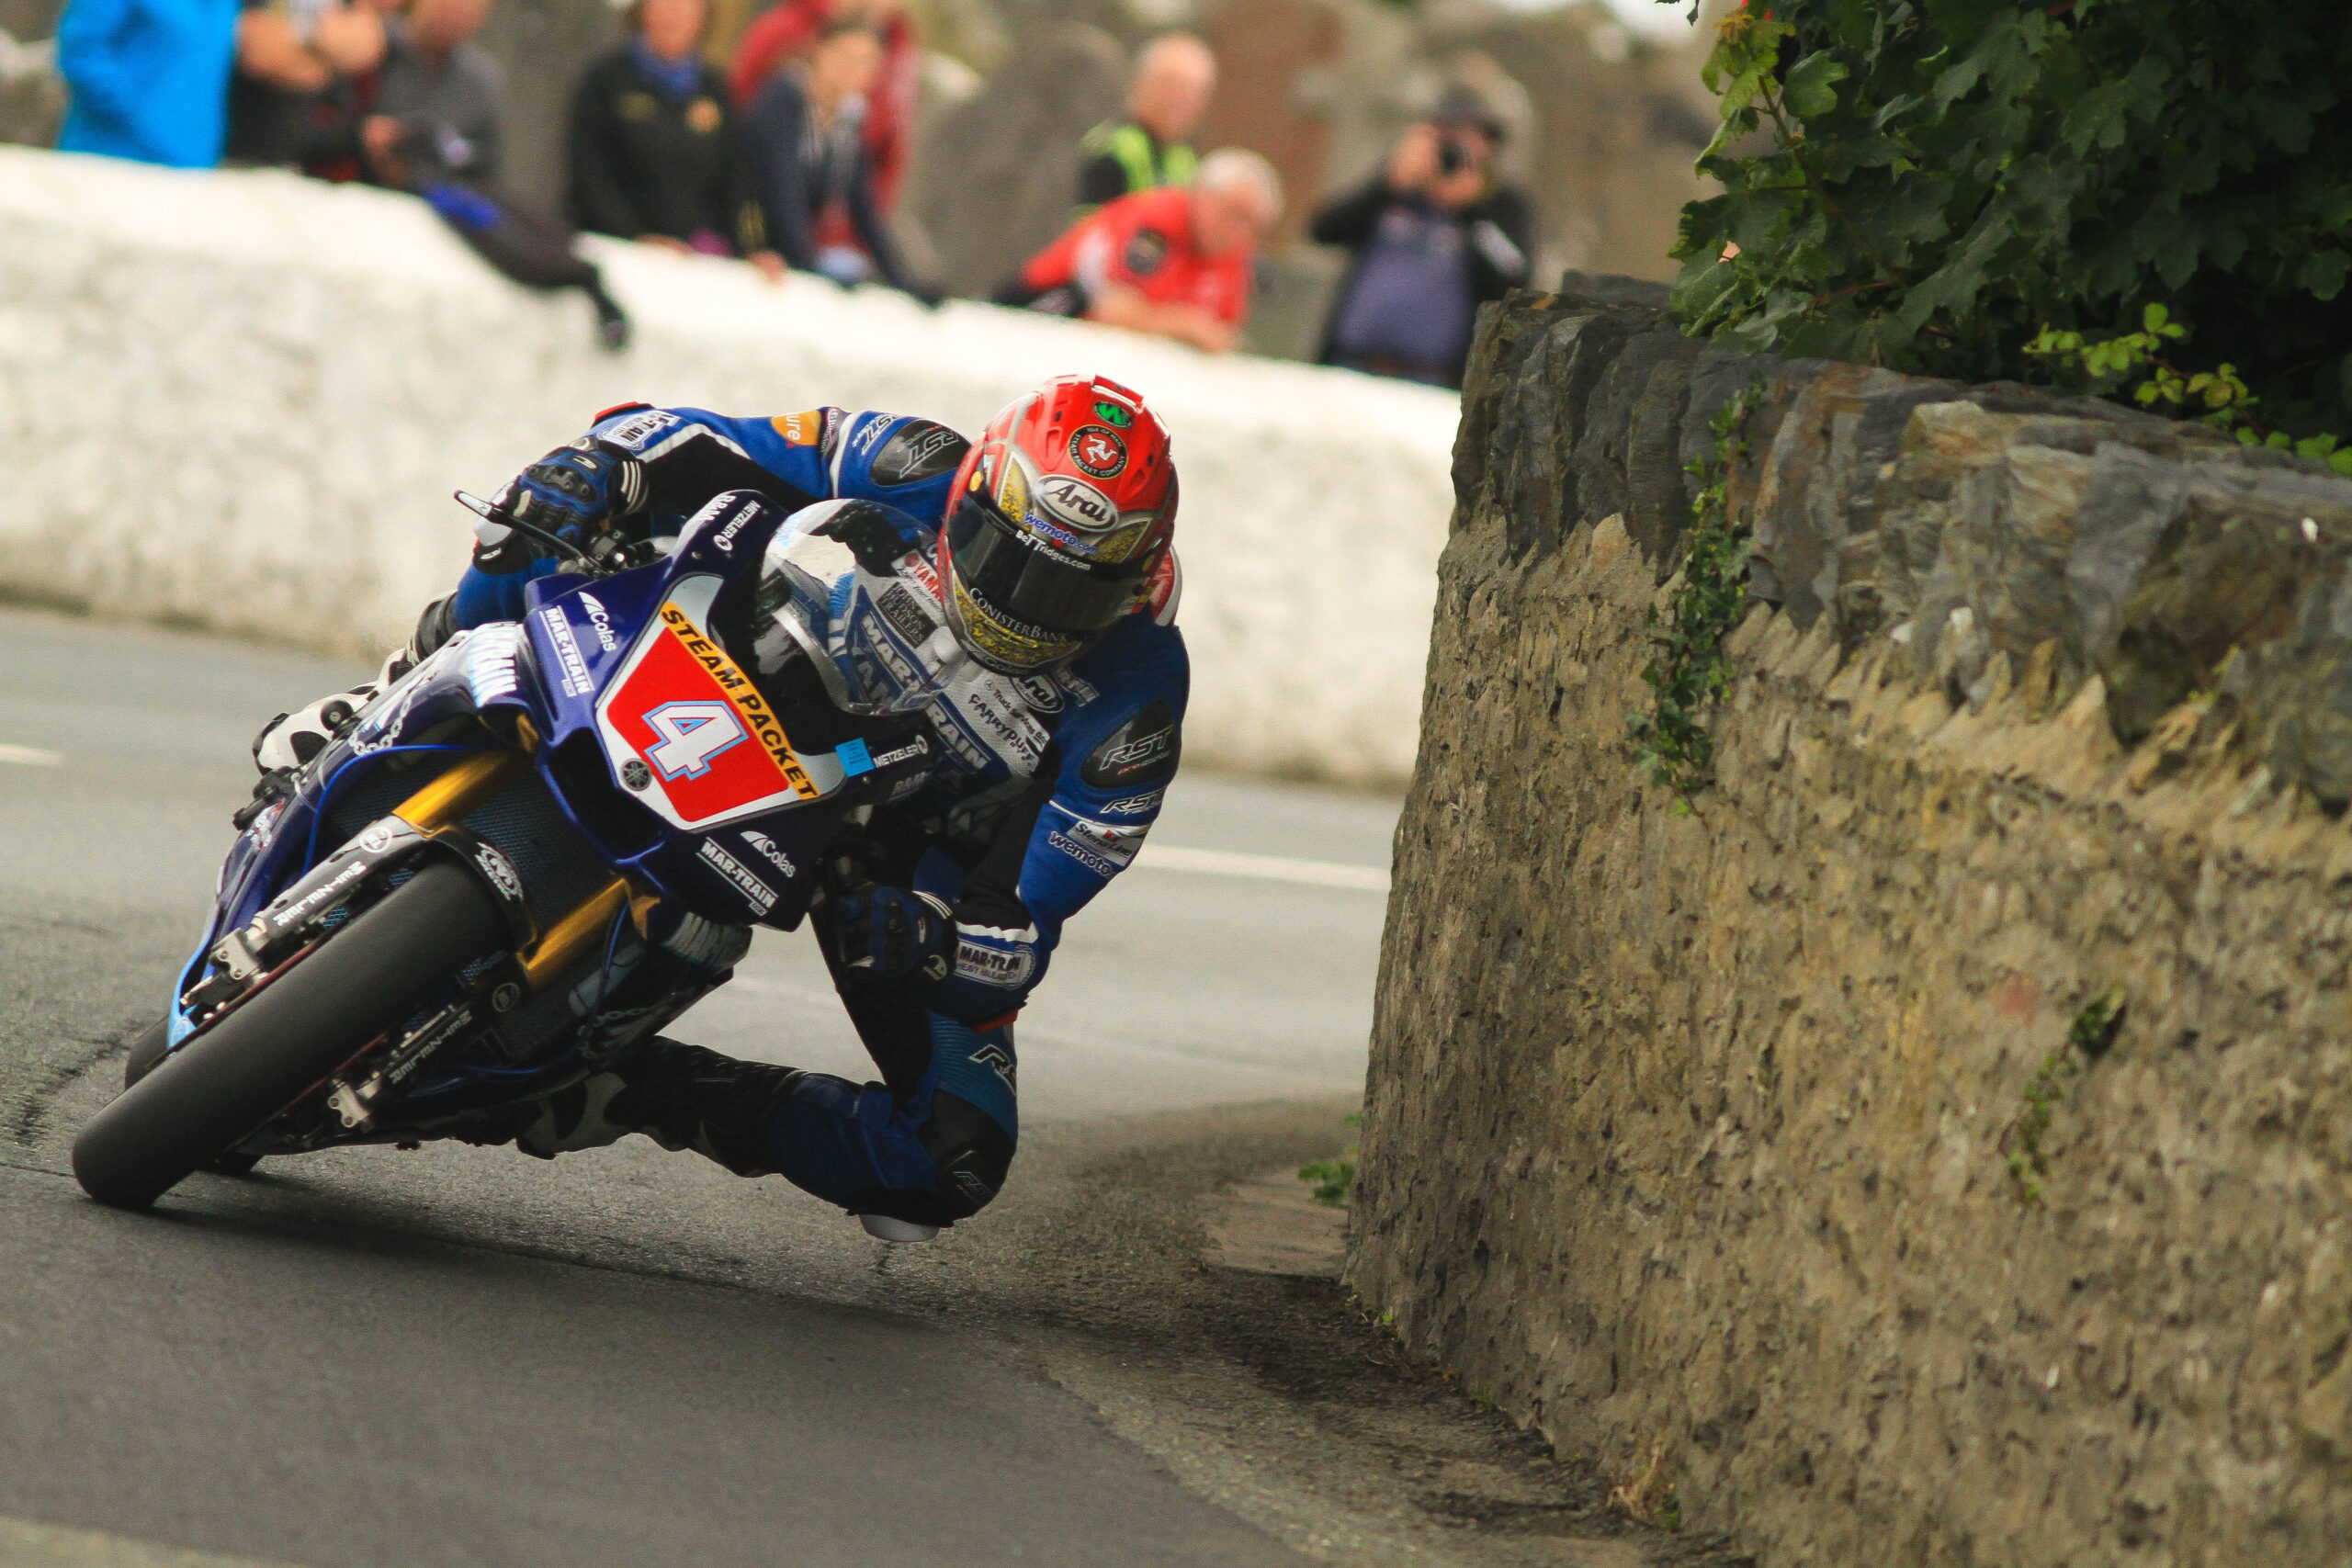 Dan Kneen To Make Scarborough Return With Mistral Racing